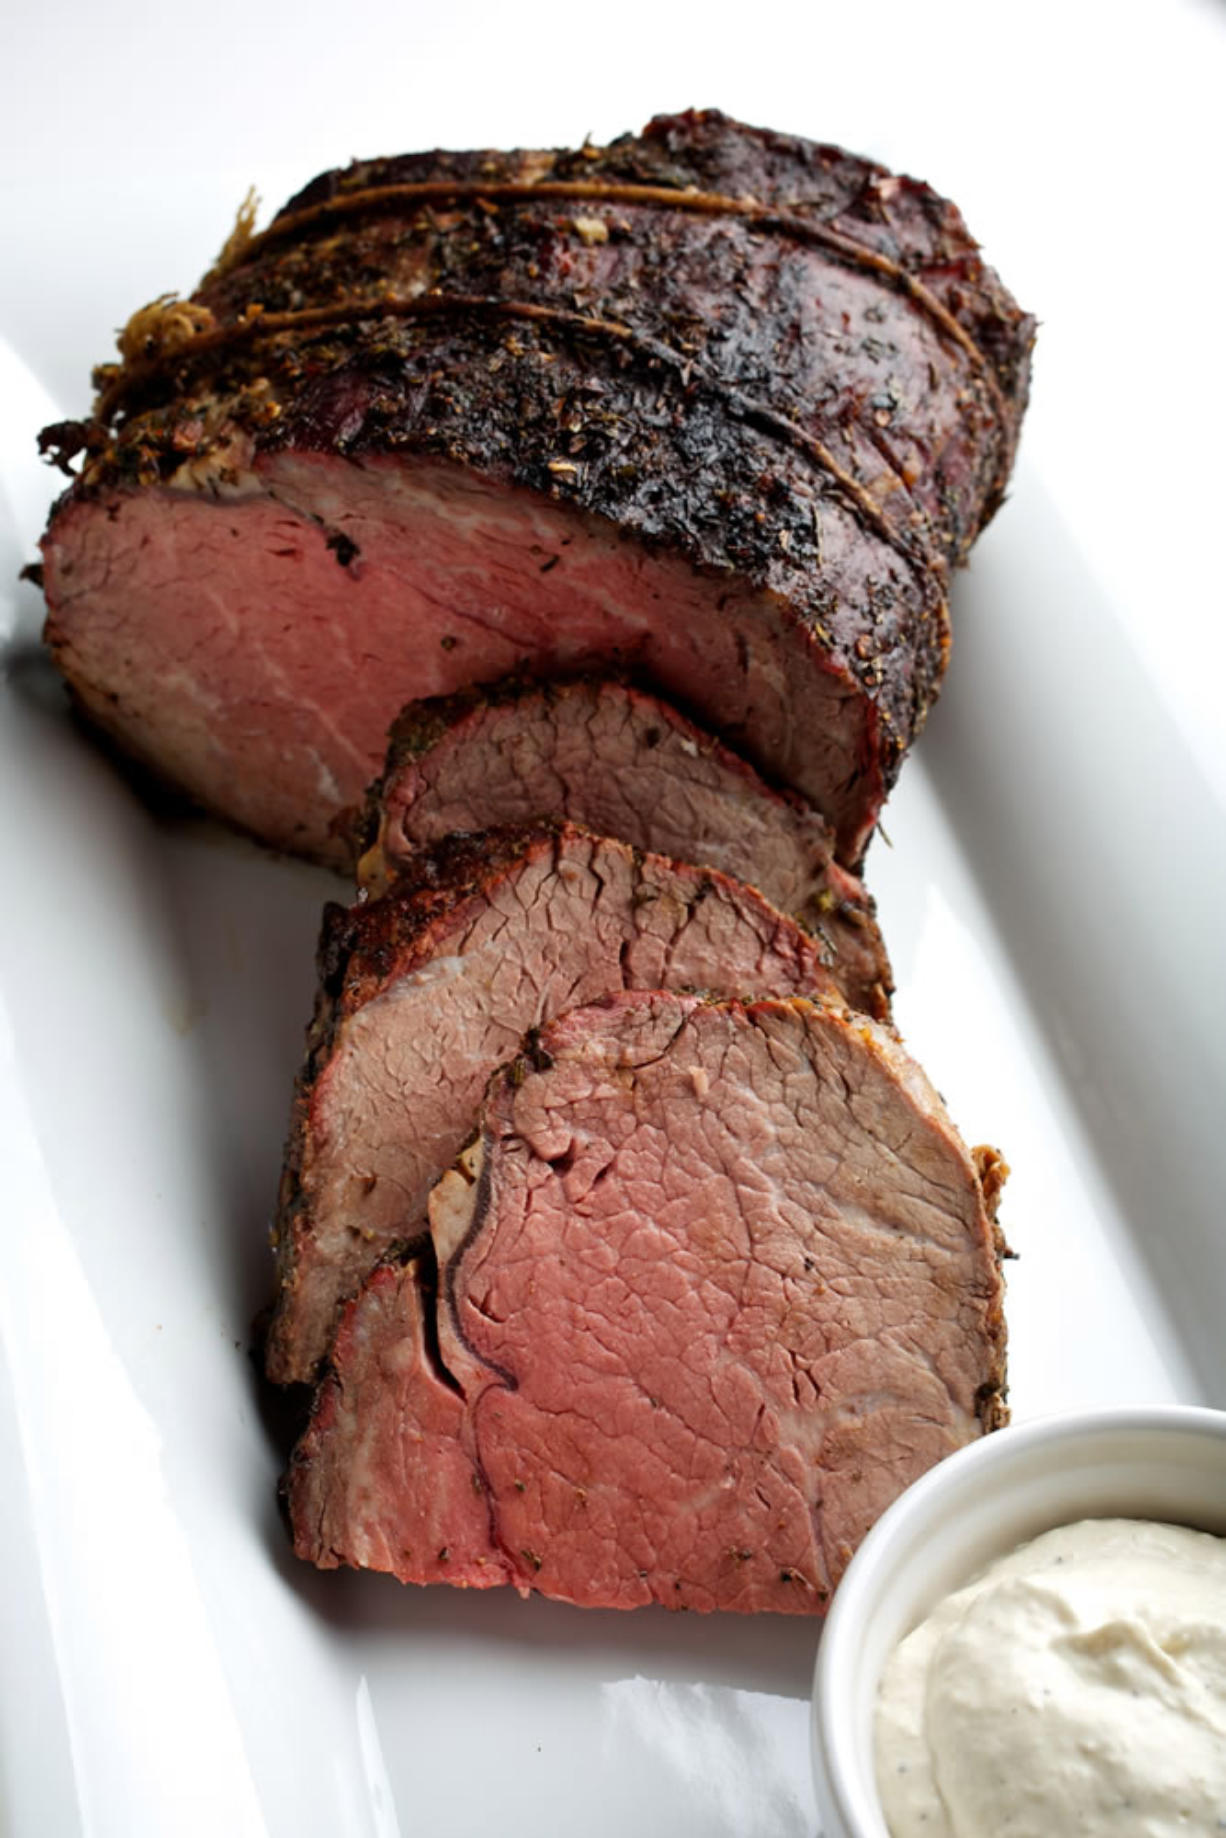 Prime rib is a kingly meat, made all the more glorious when smoked.